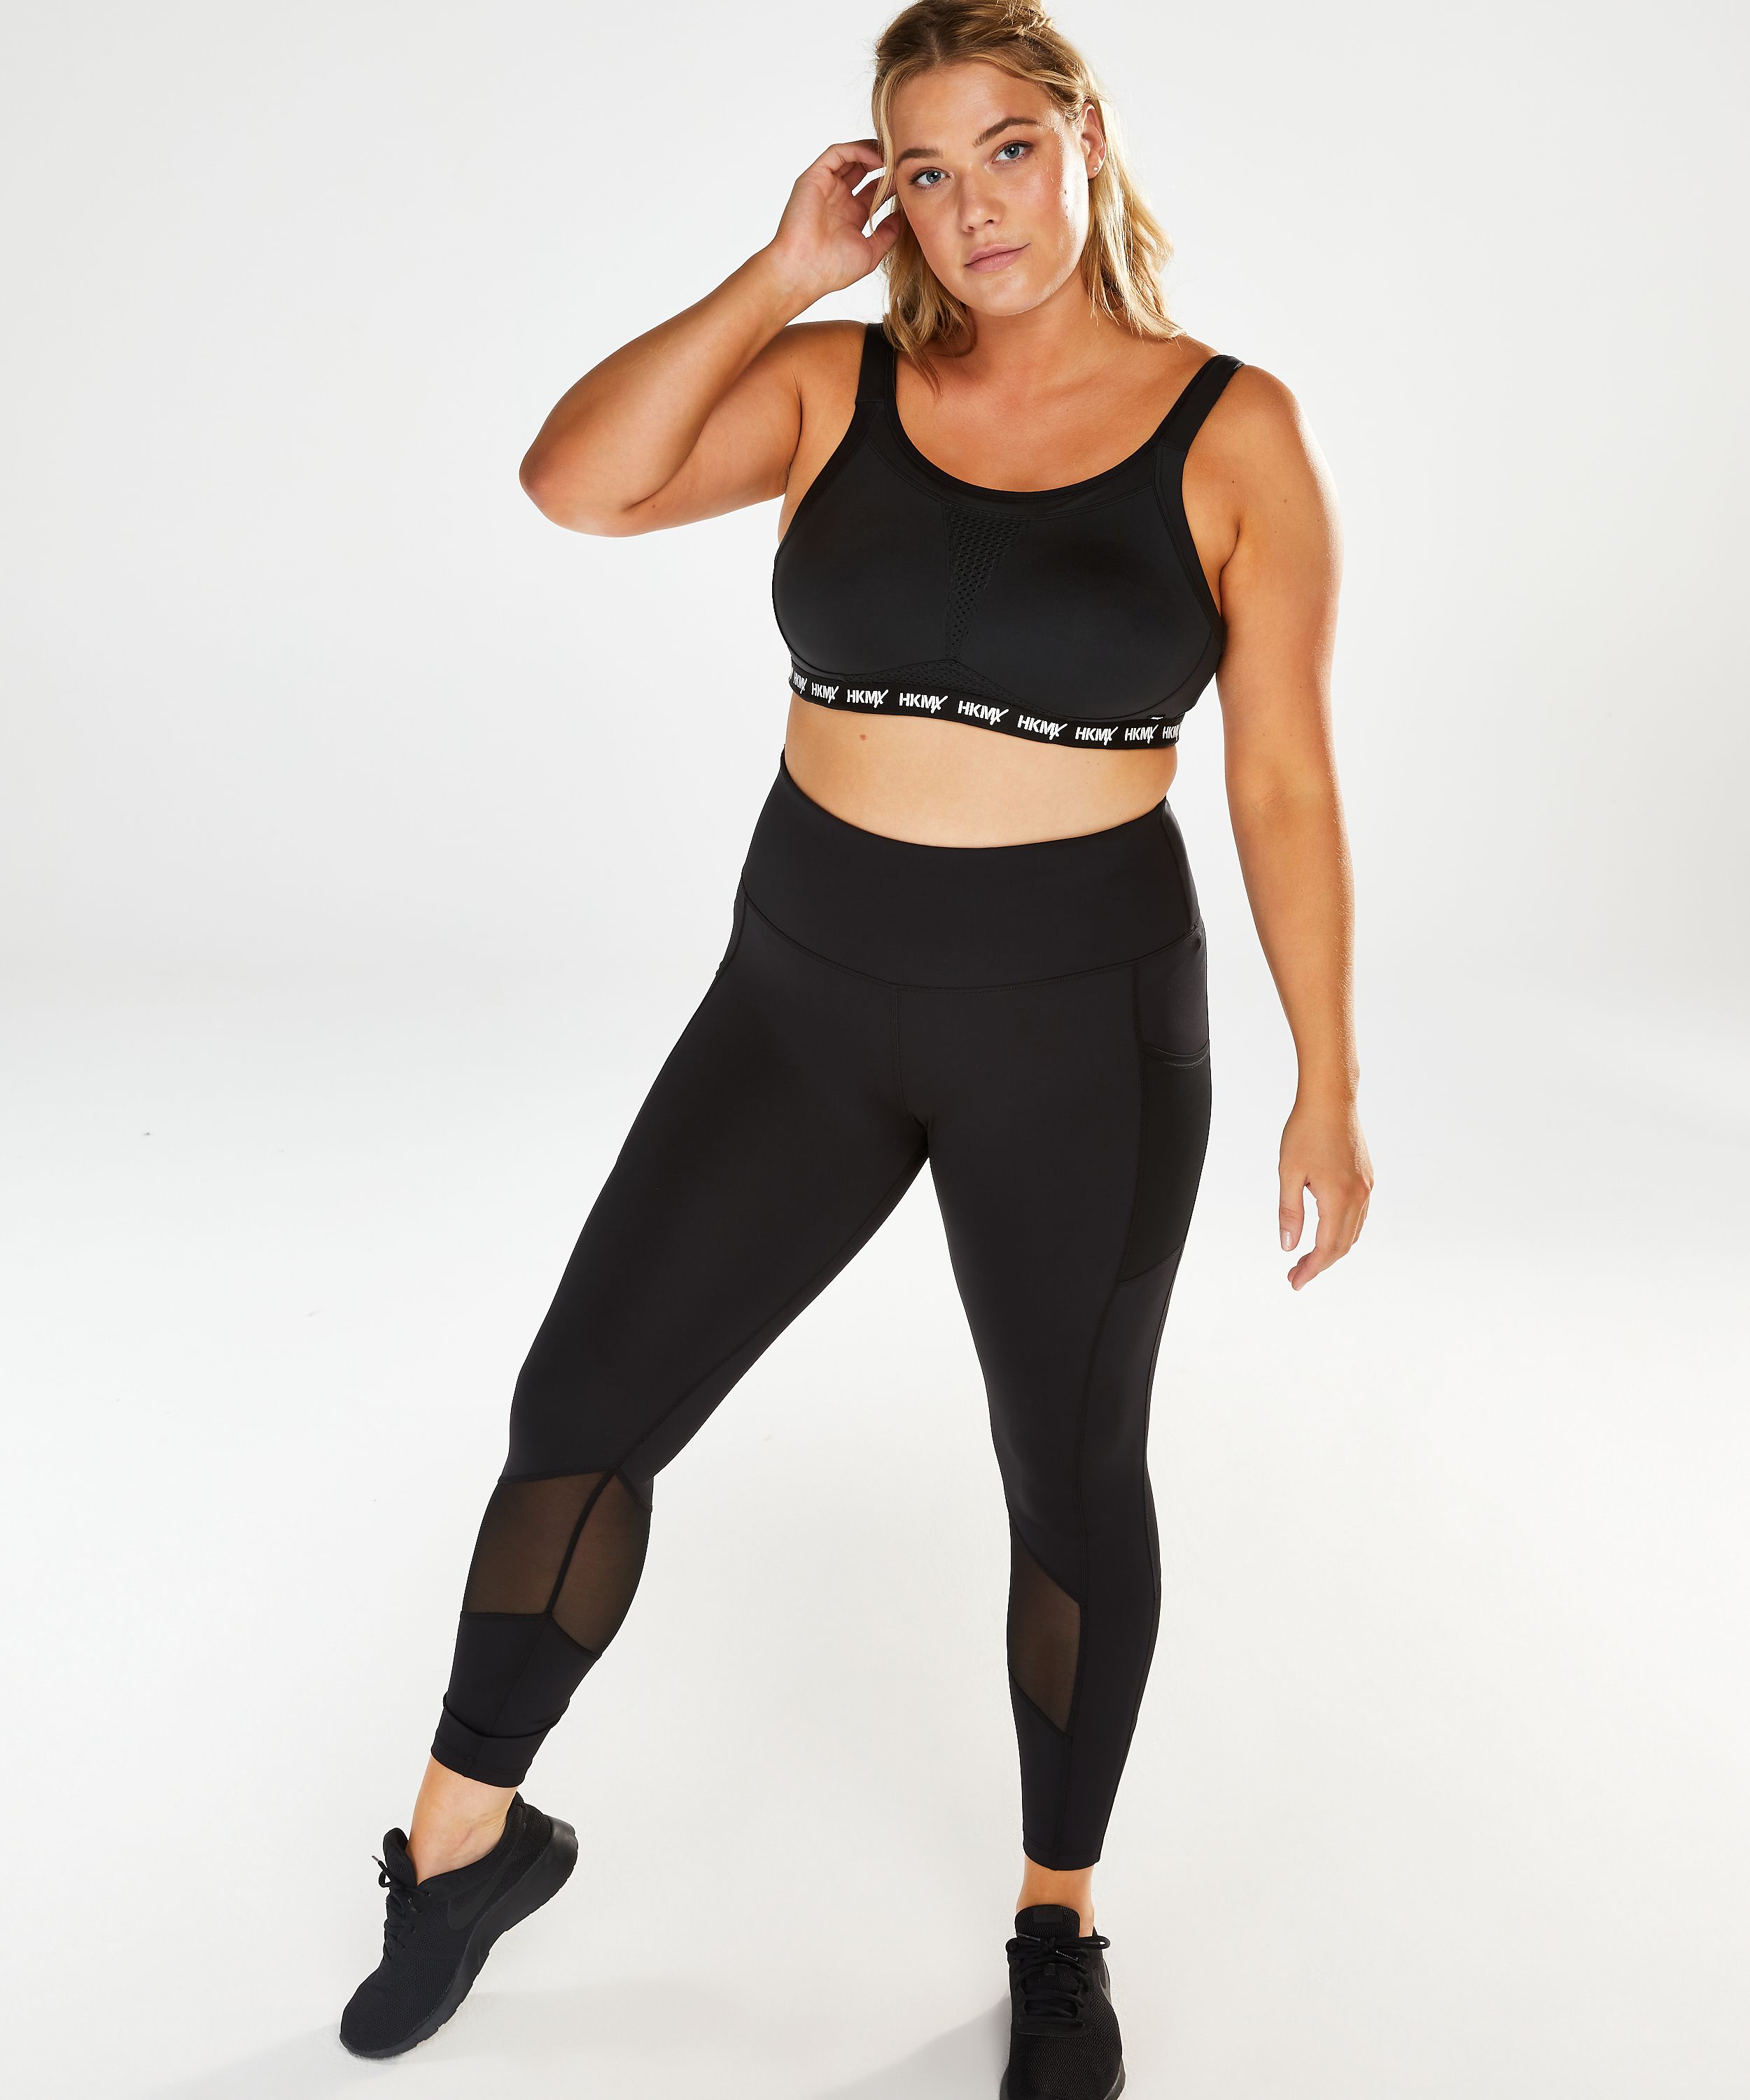 HKMX Oh My Squat High Waisted Legging , Zwart, main